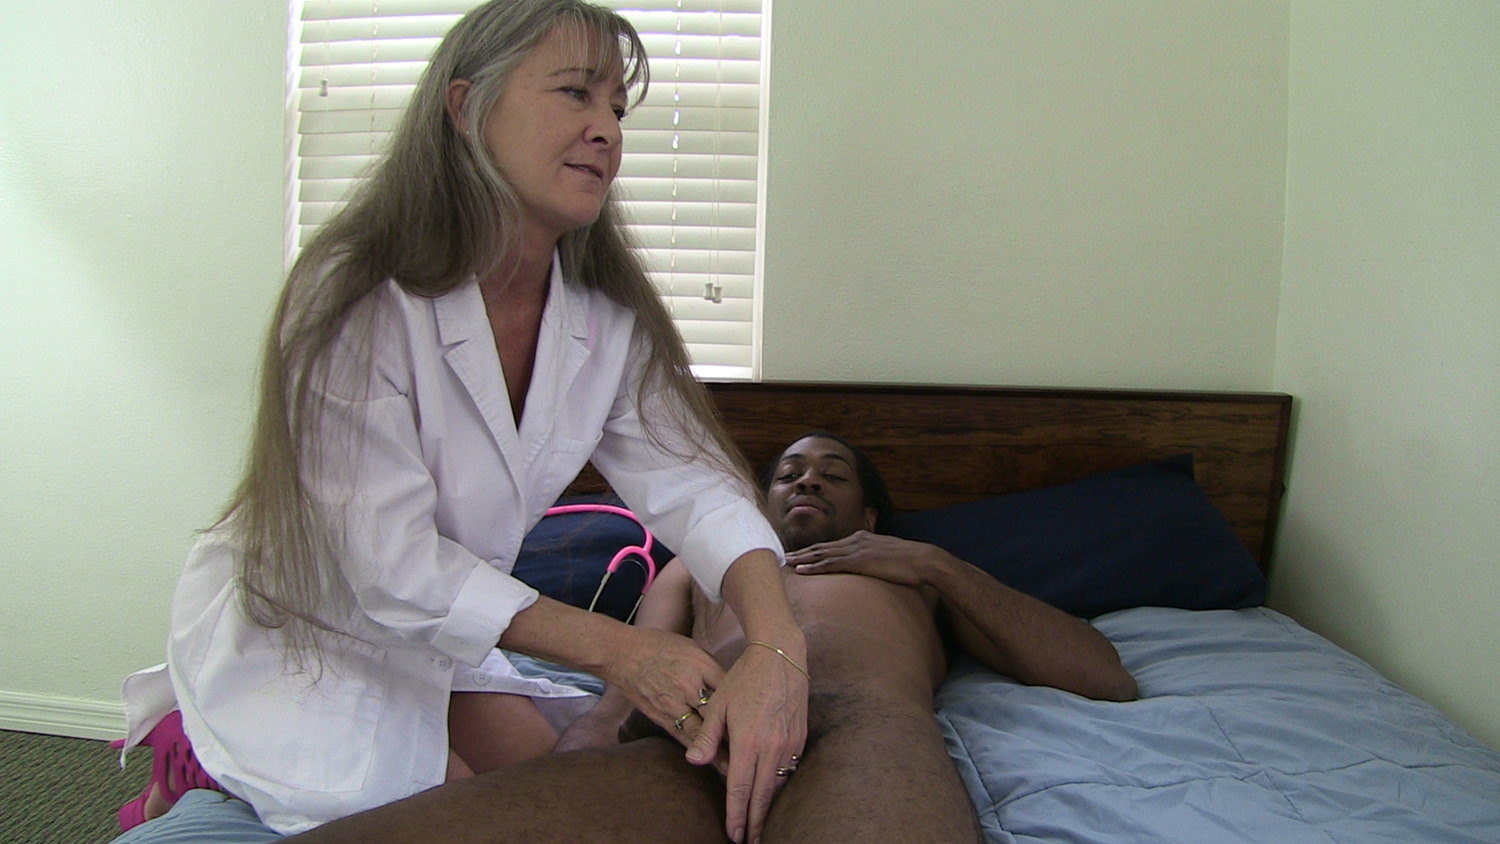 A House Visit Porn house call   www.freee-porns